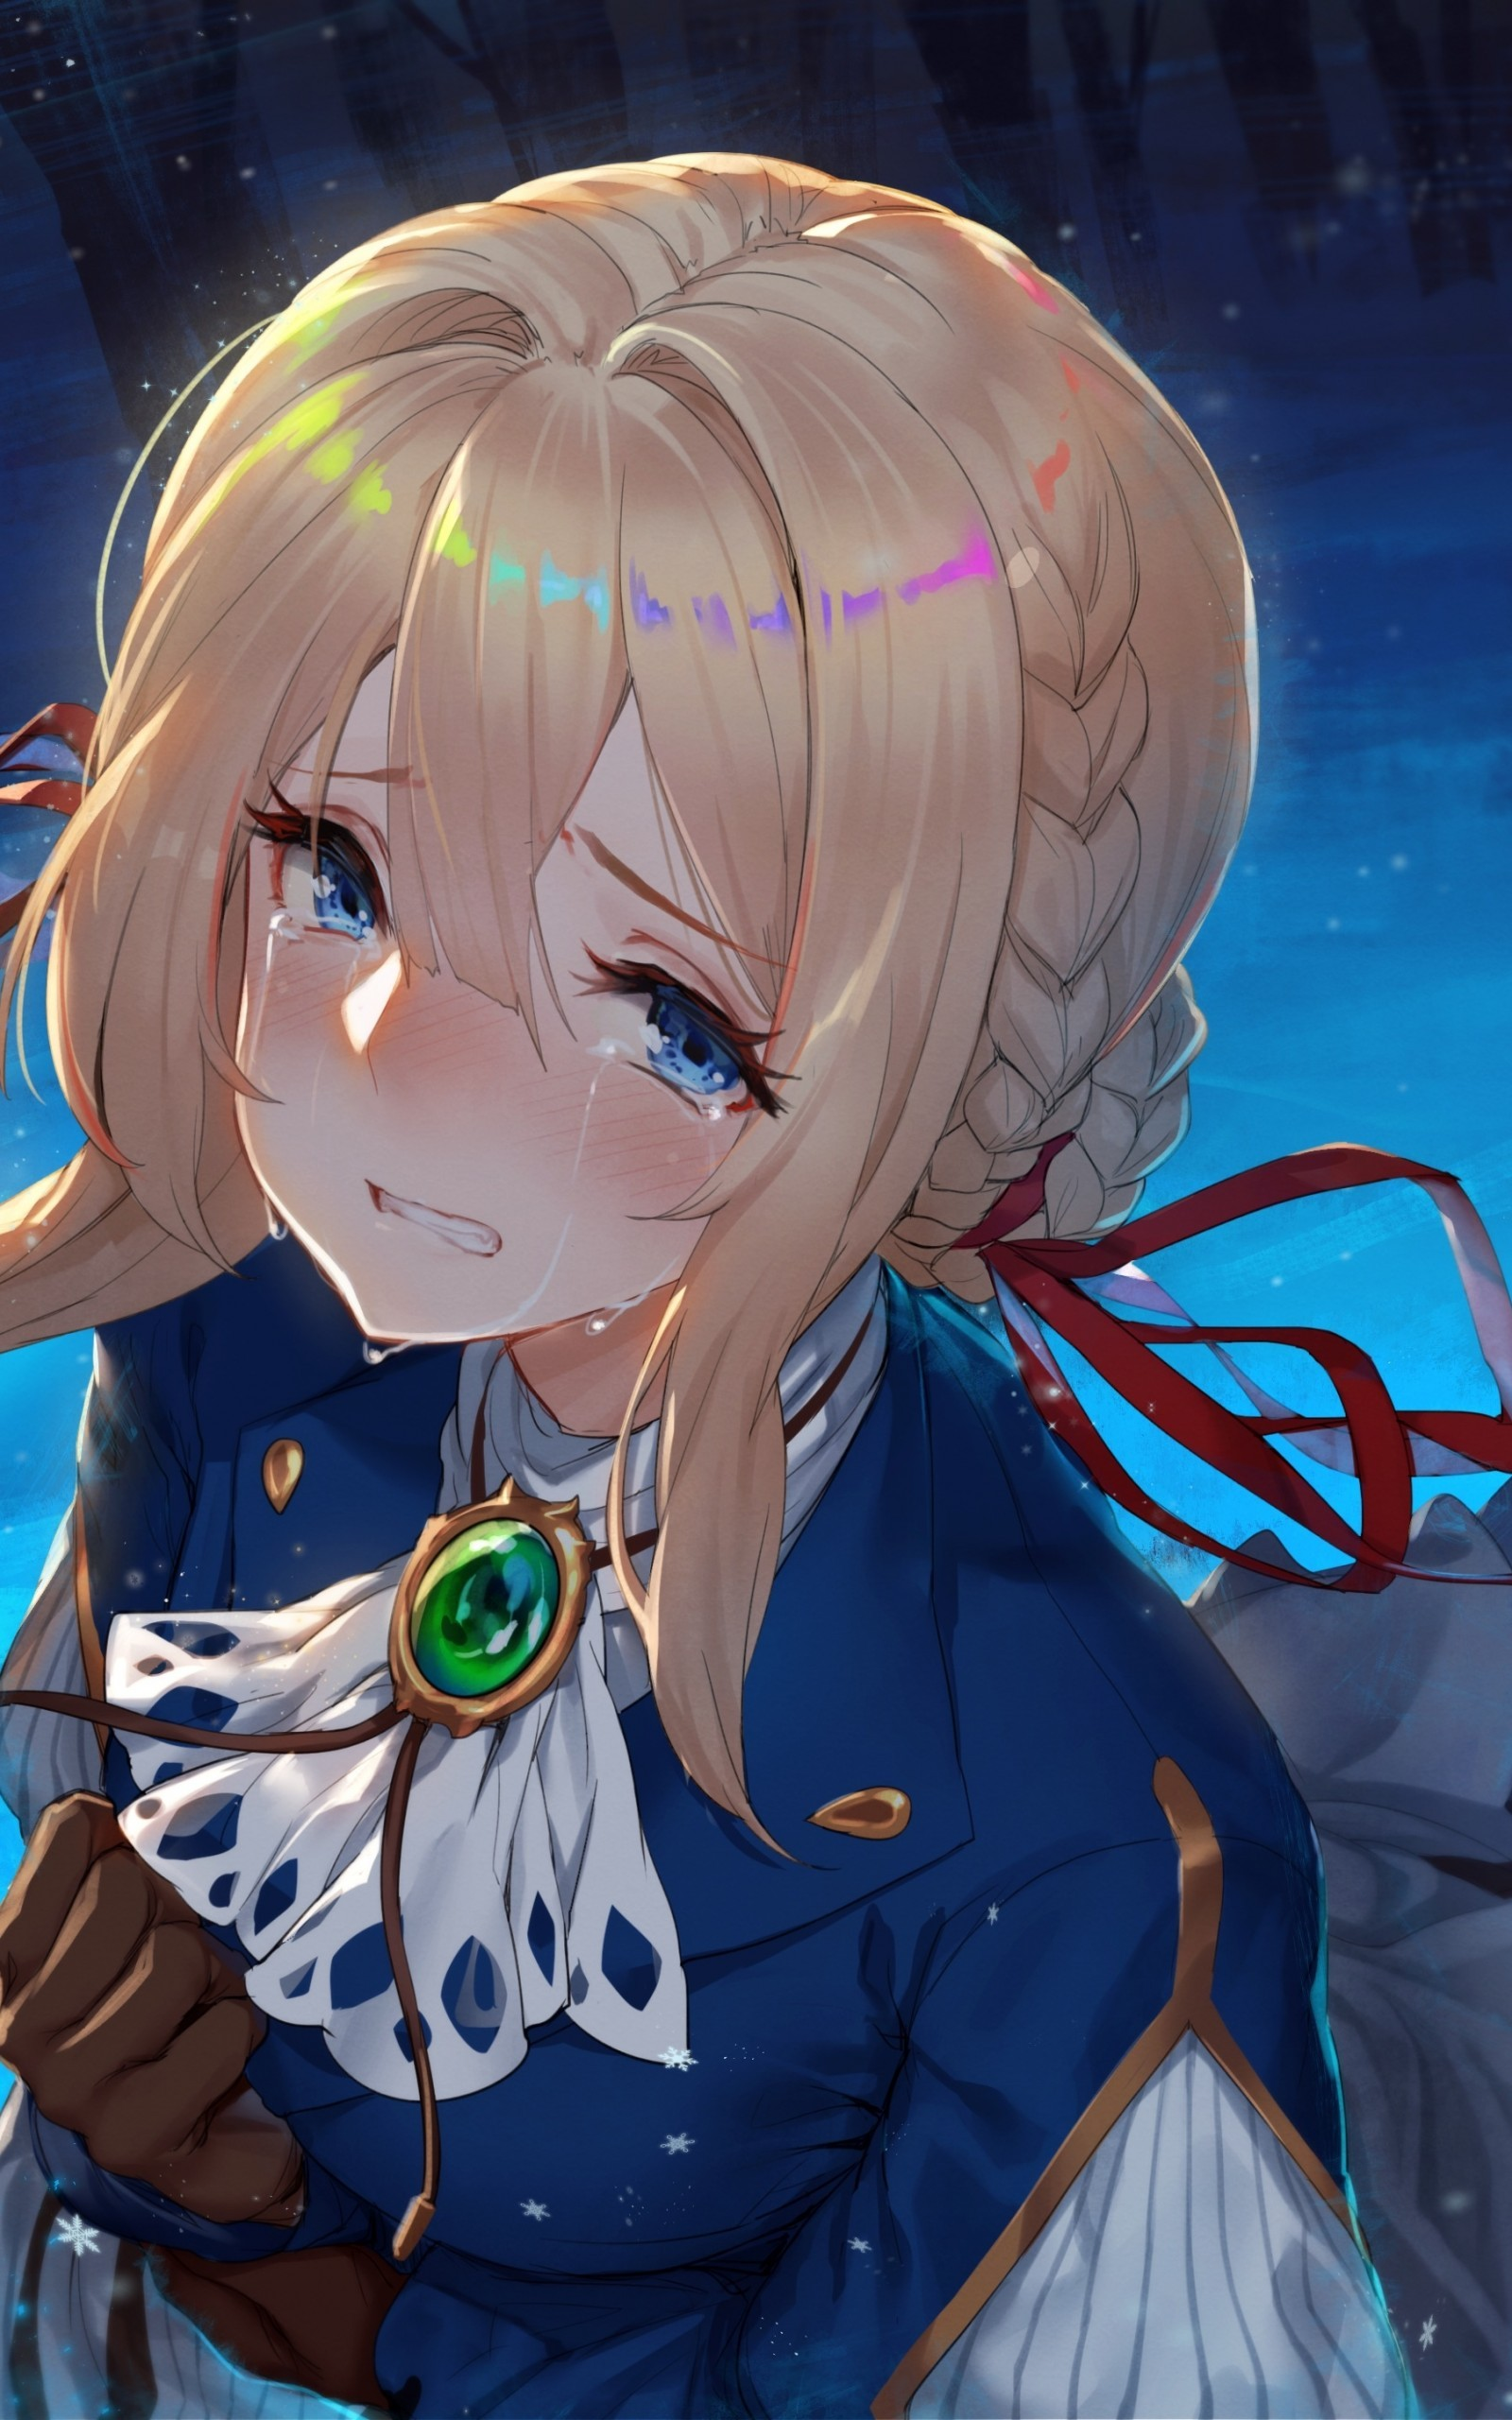 Violet Evergarden, Crying, Blonde, Sad Face, Papers - Sad Anime